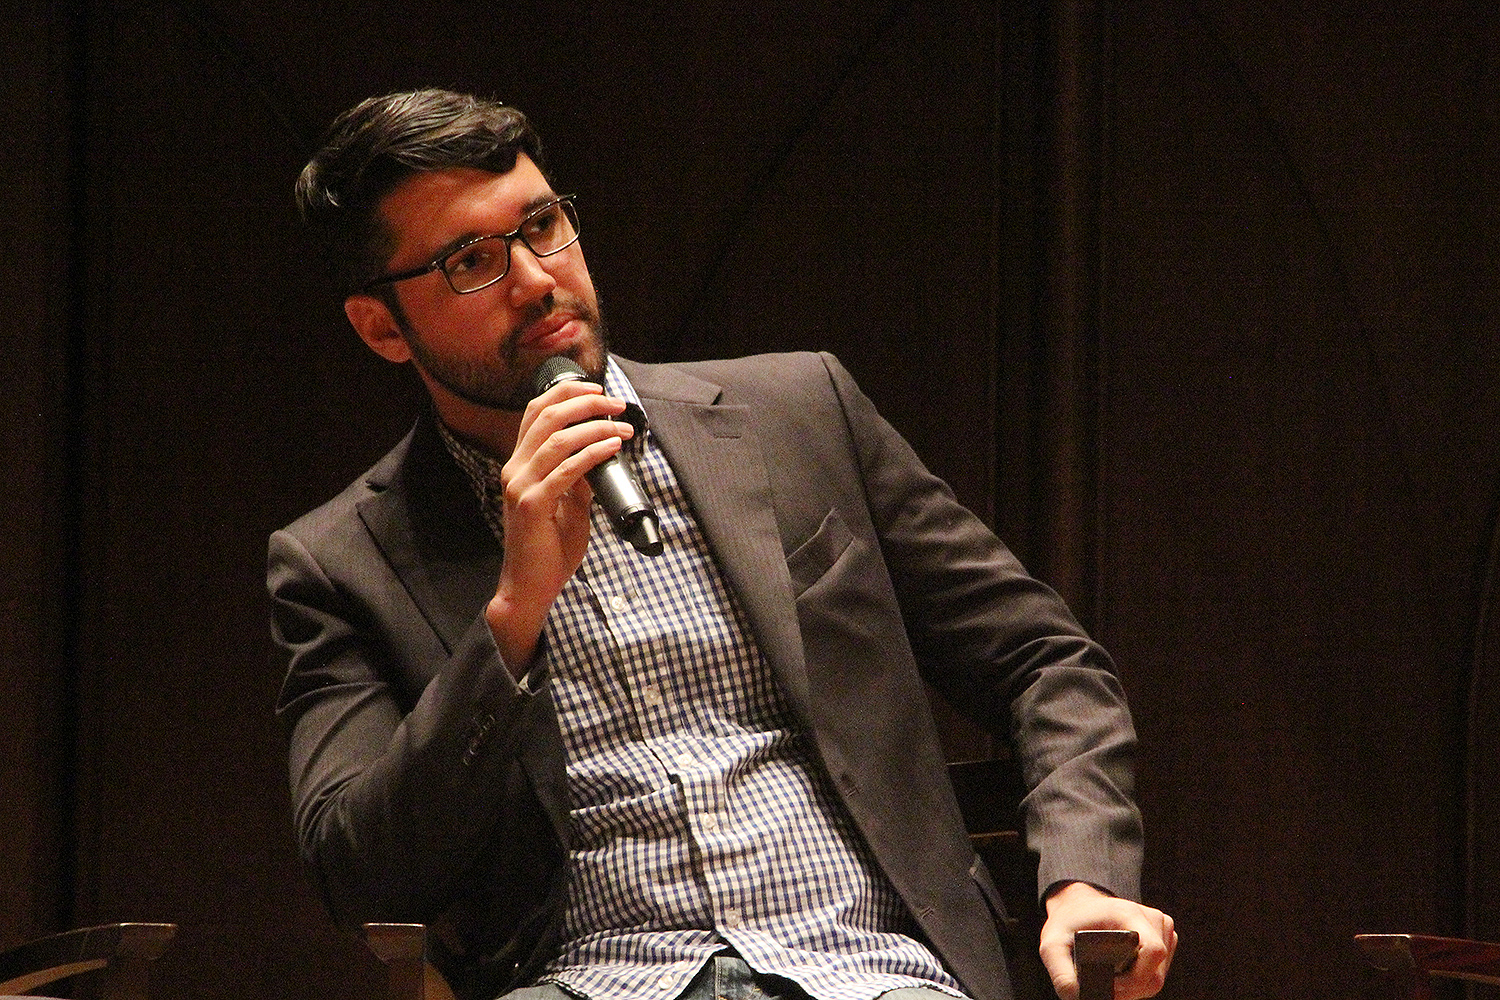 """Yamil Velez, assistant professor of government, spoke on """"How to Build a Wall: Immigration and Nativism in the 21st Century."""""""